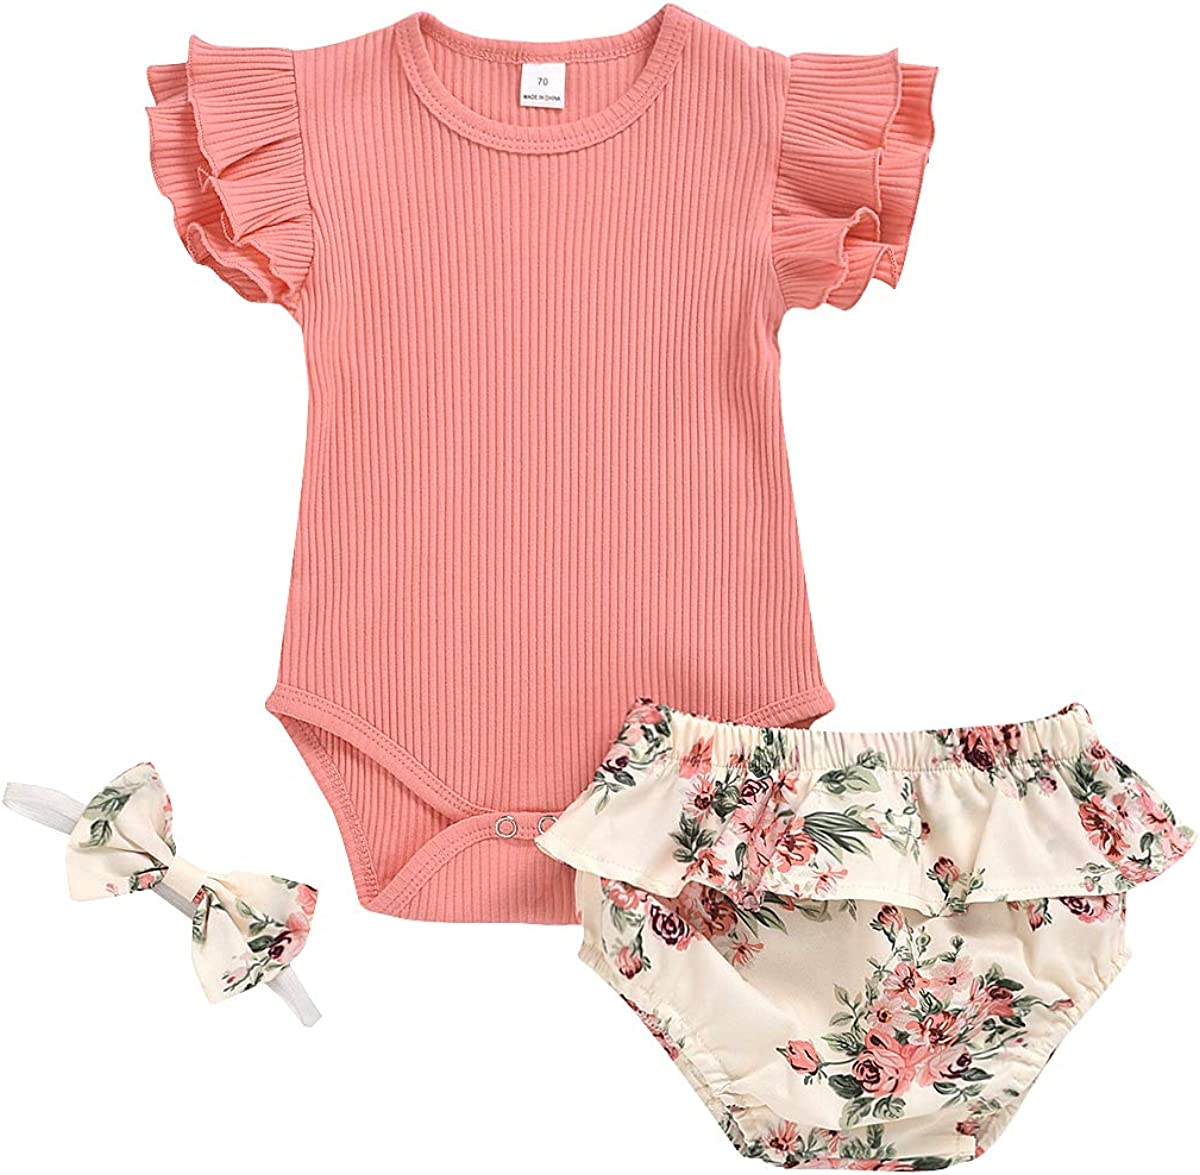 Newborn Baby Girl Summer Popular Outlet sale feature Clothes Ruffle Solid Sleeveless Romper+